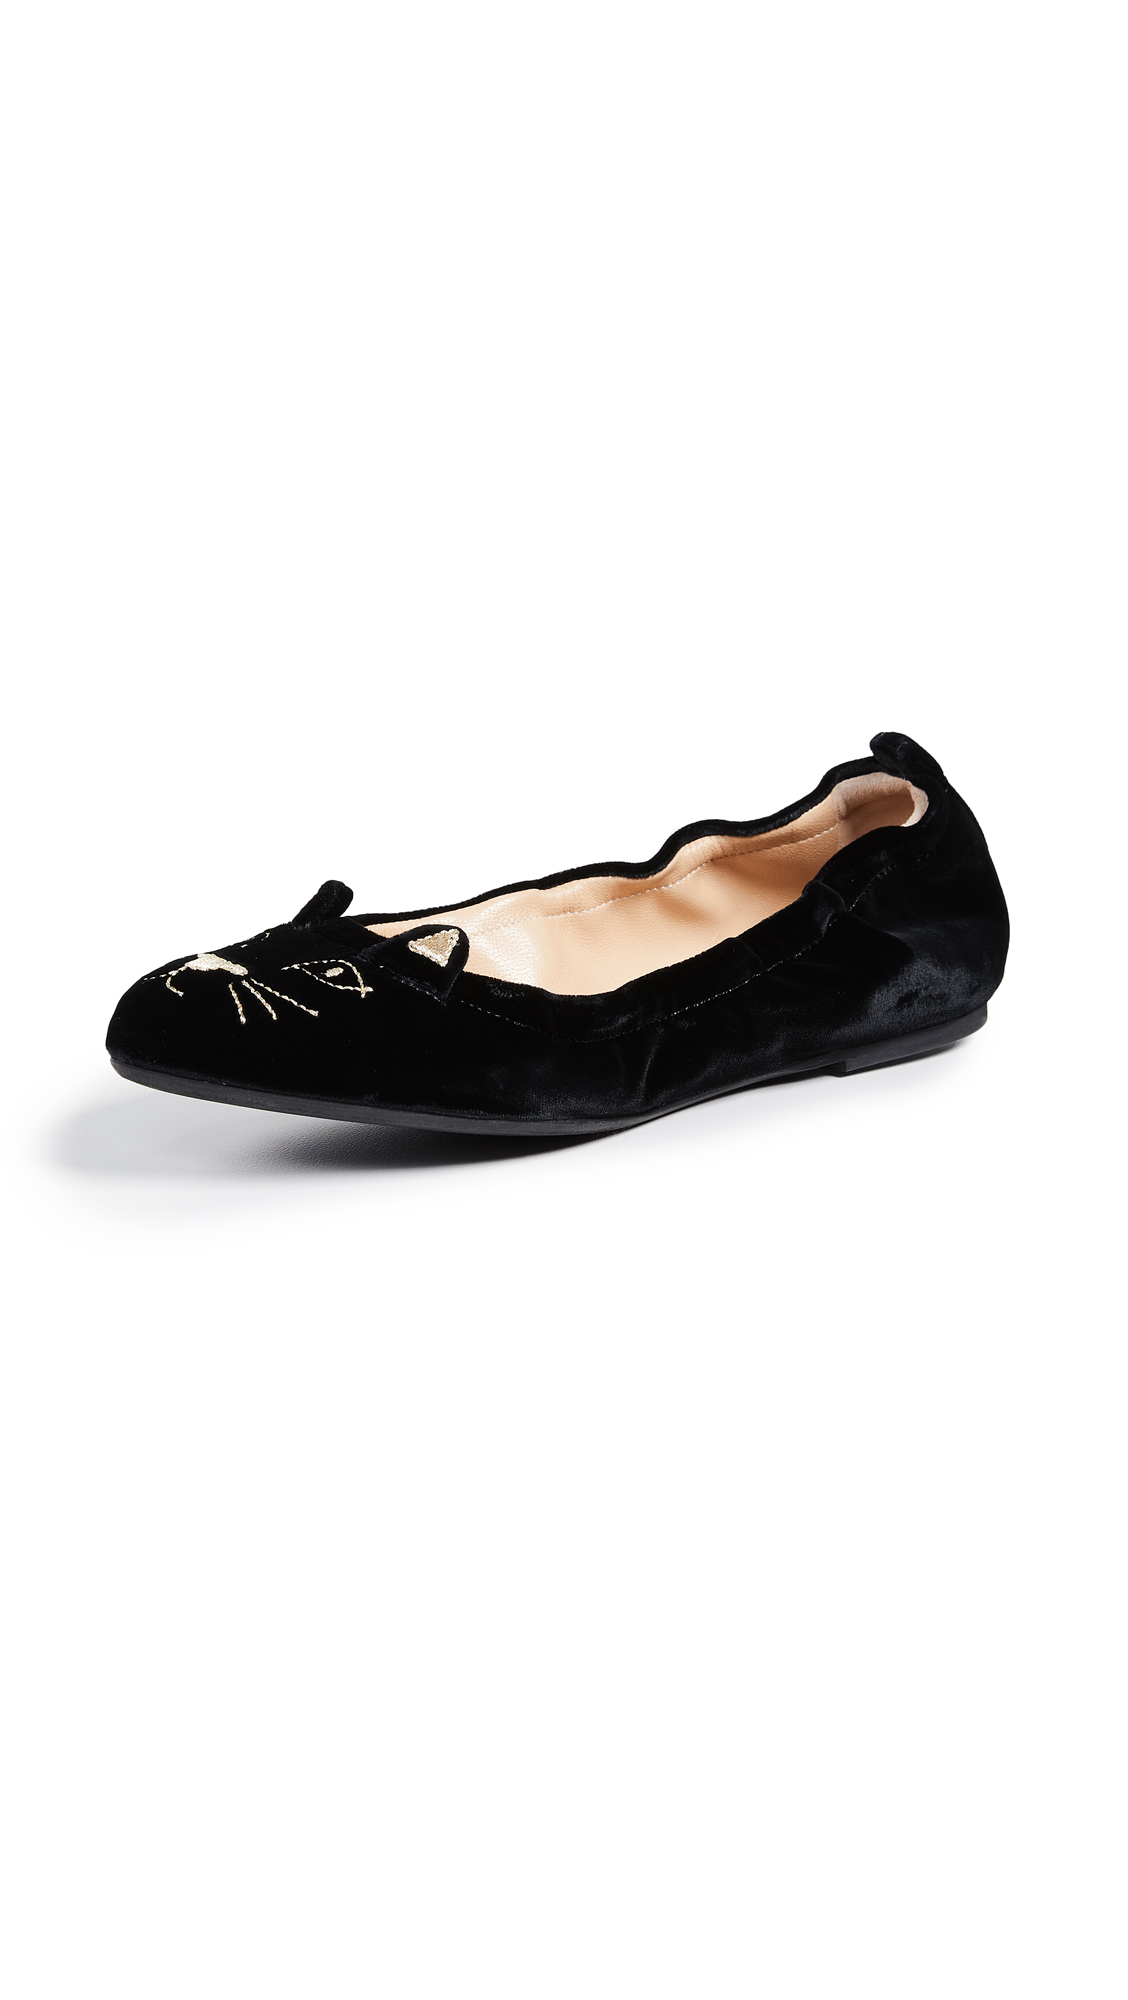 Charlotte Olympia Kitty Flats - Black